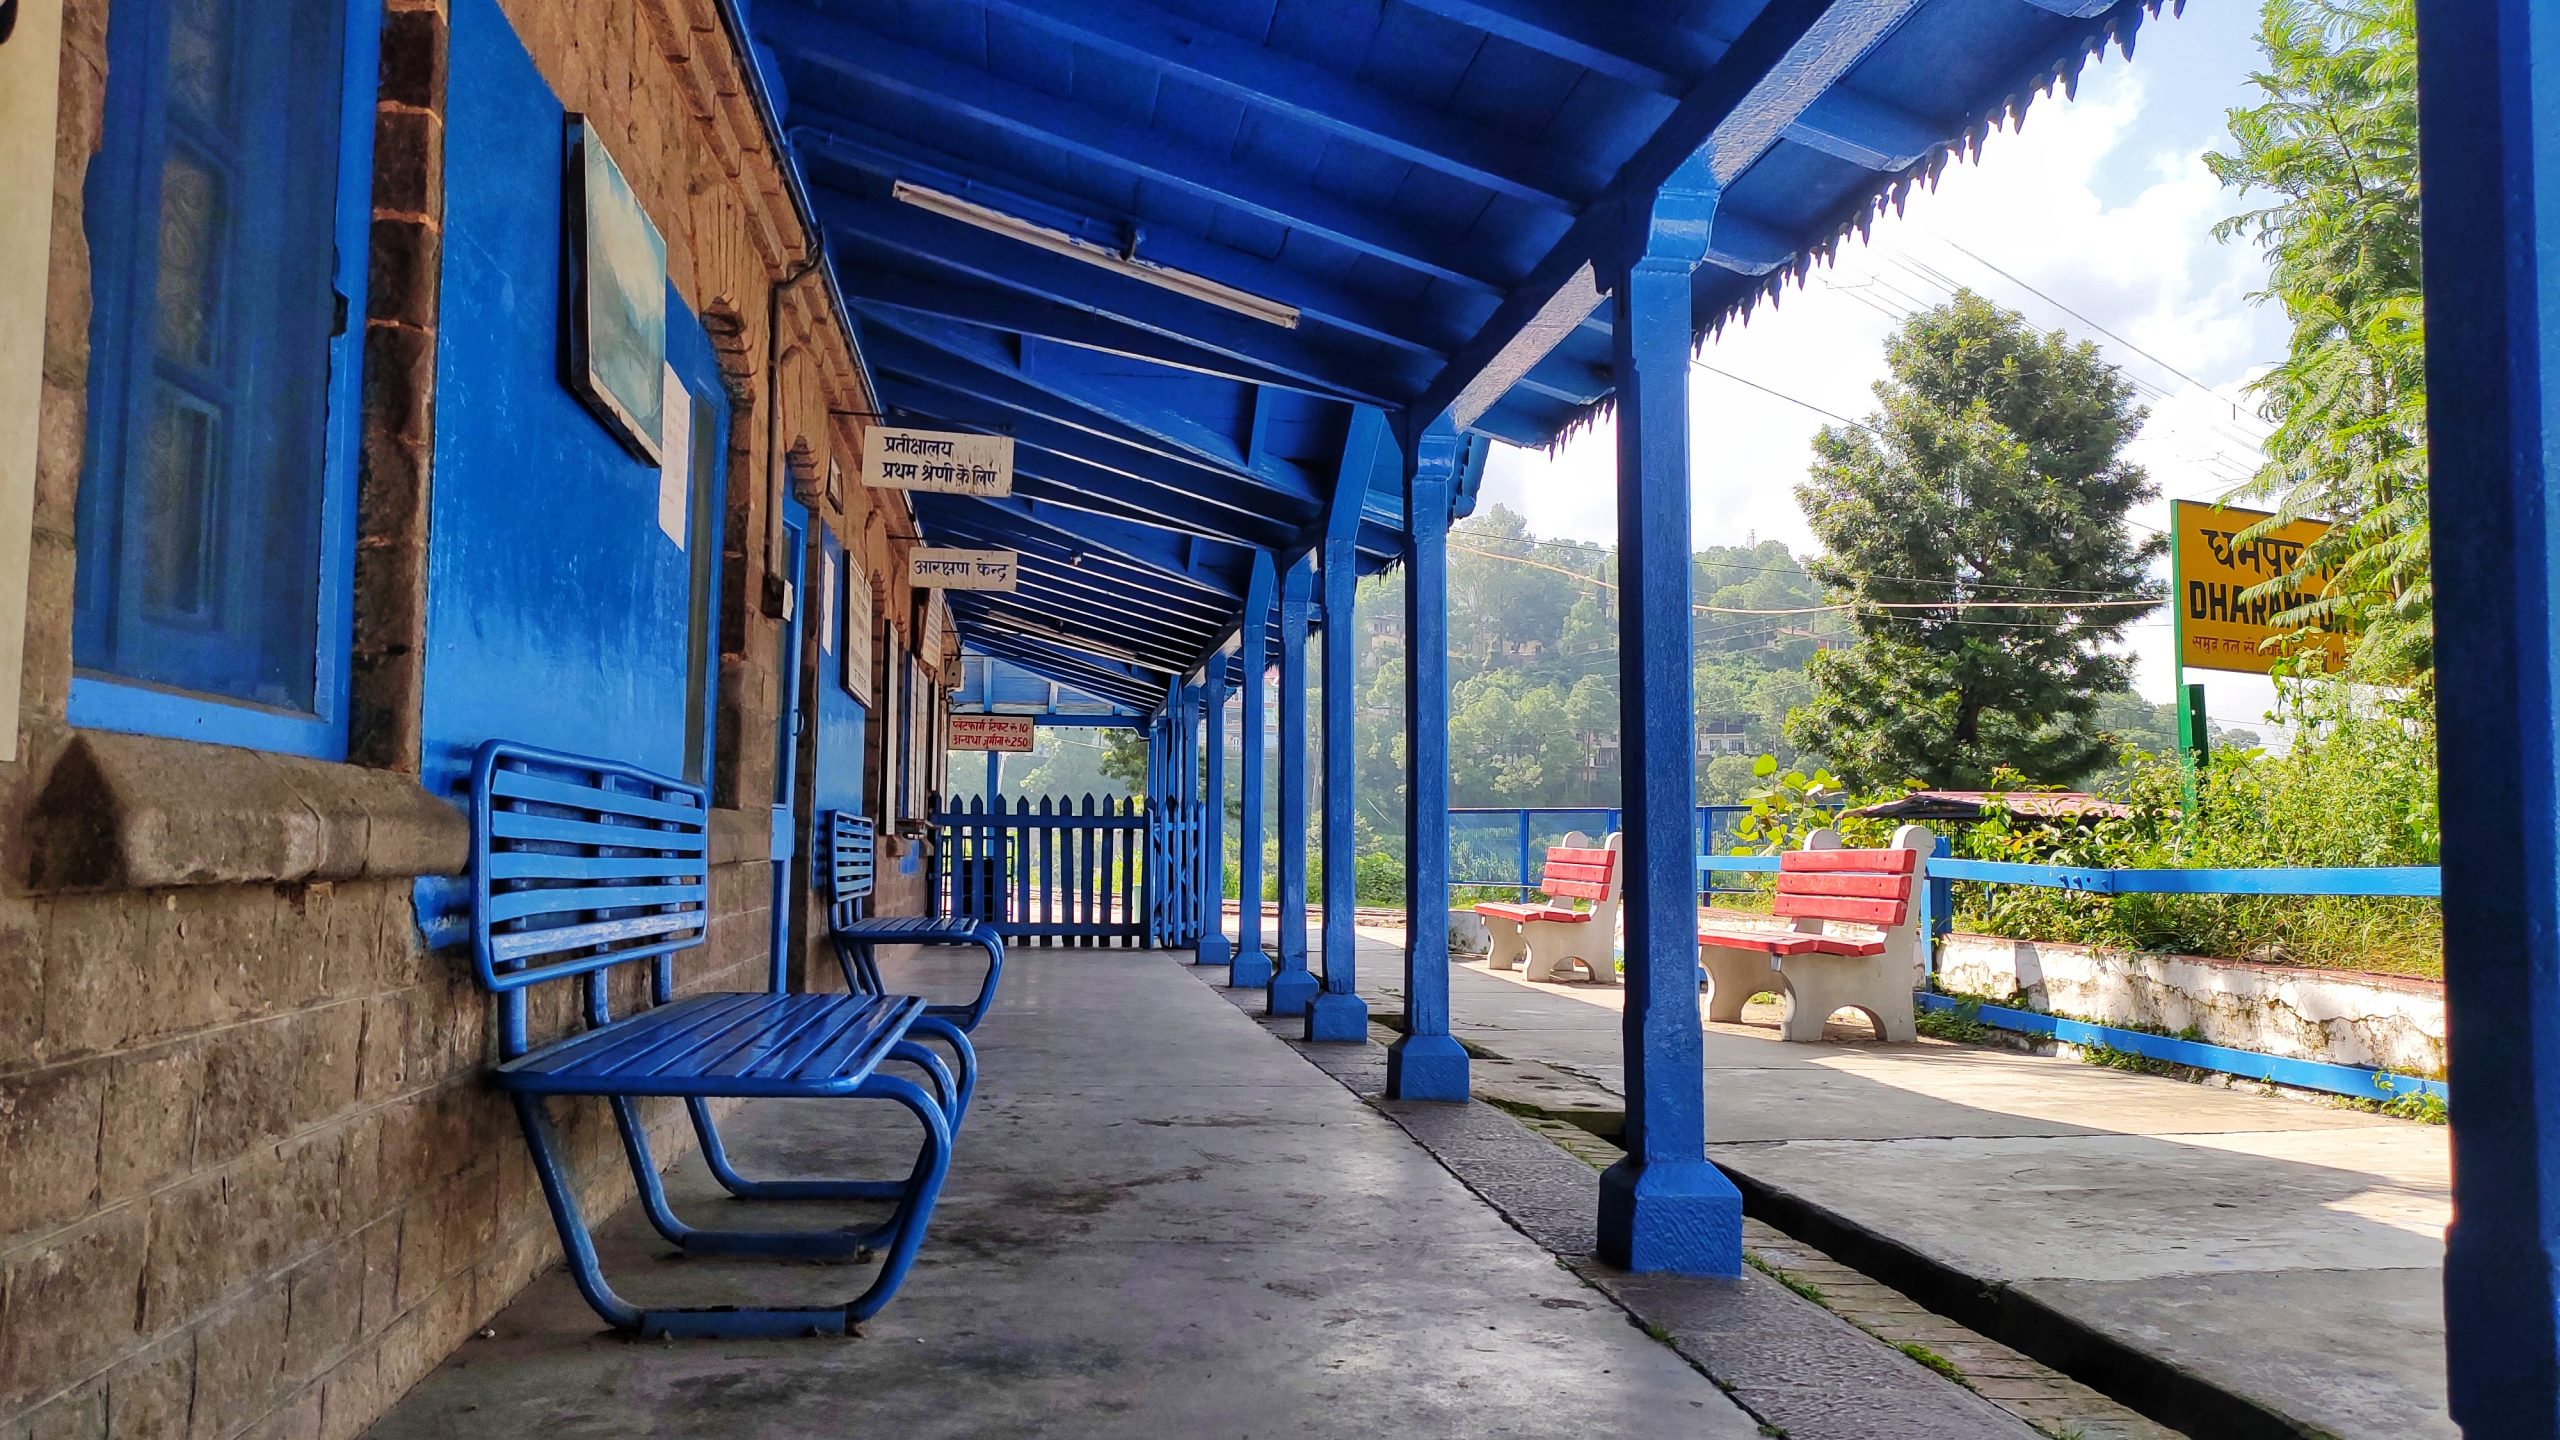 Indian Railway station at hills